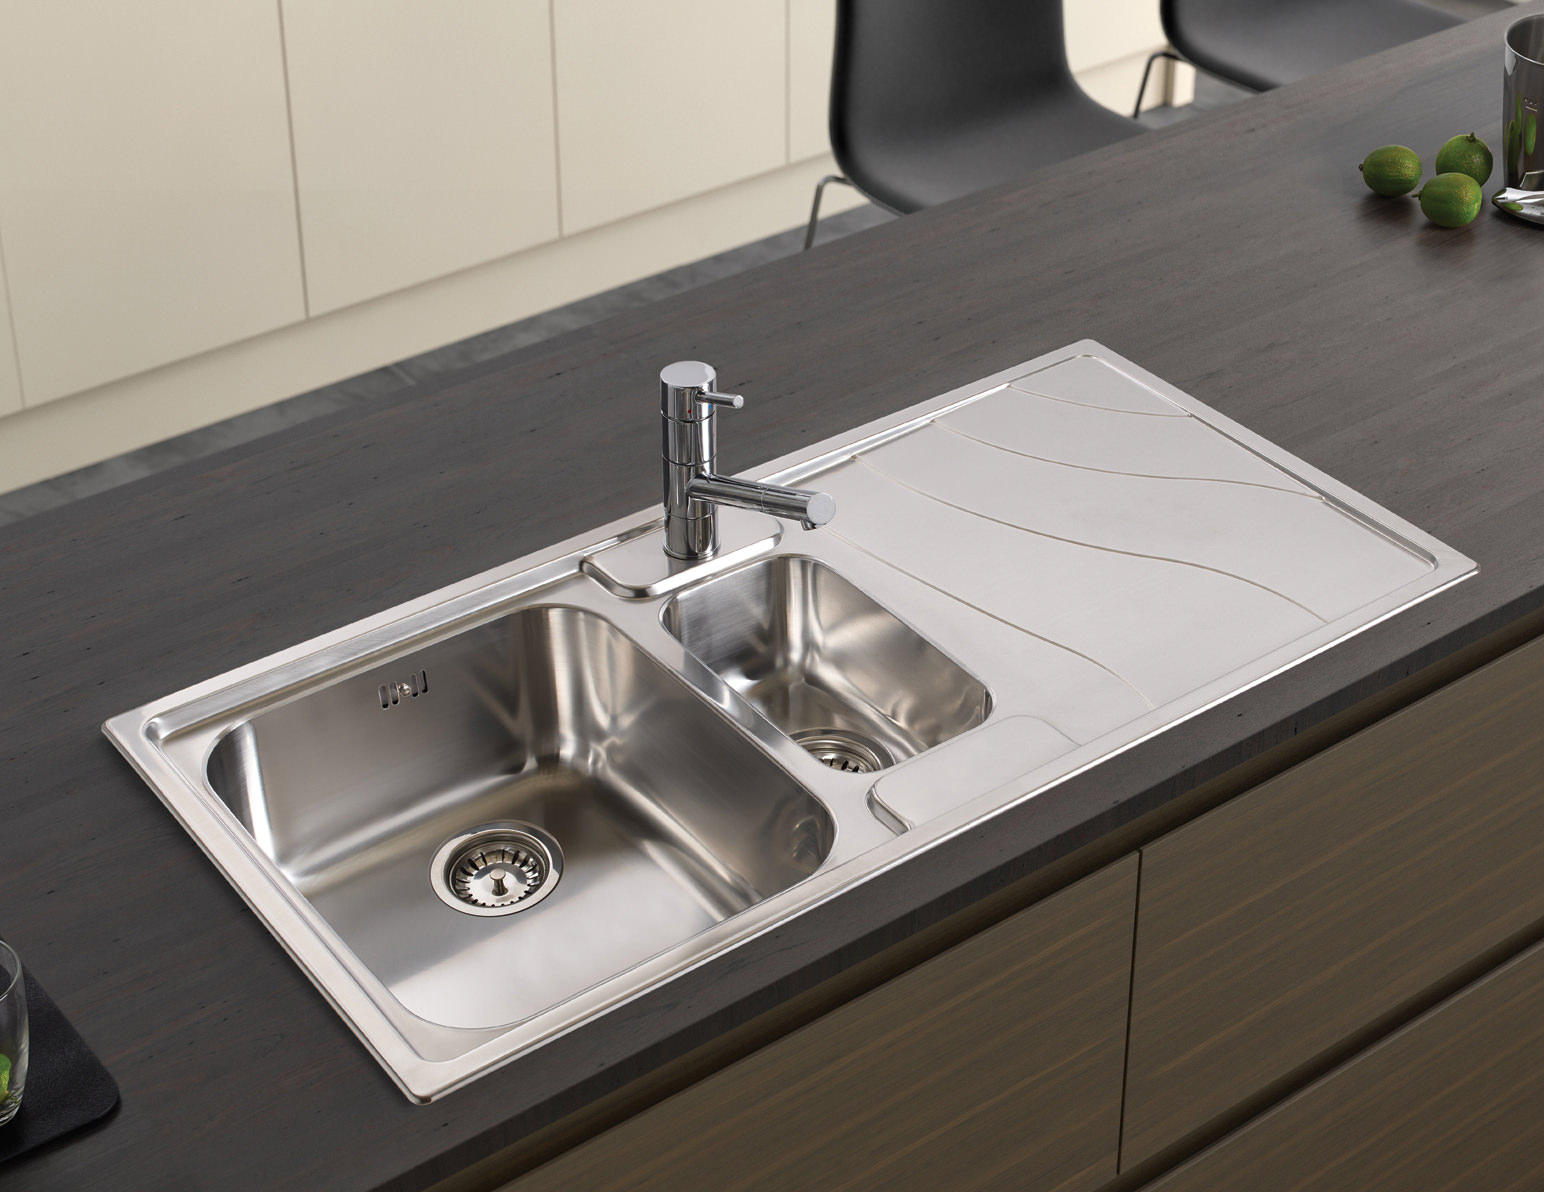 ... image of Astracast Ocean 1.5 Bowl Polished Stainless Steel Inset Sink